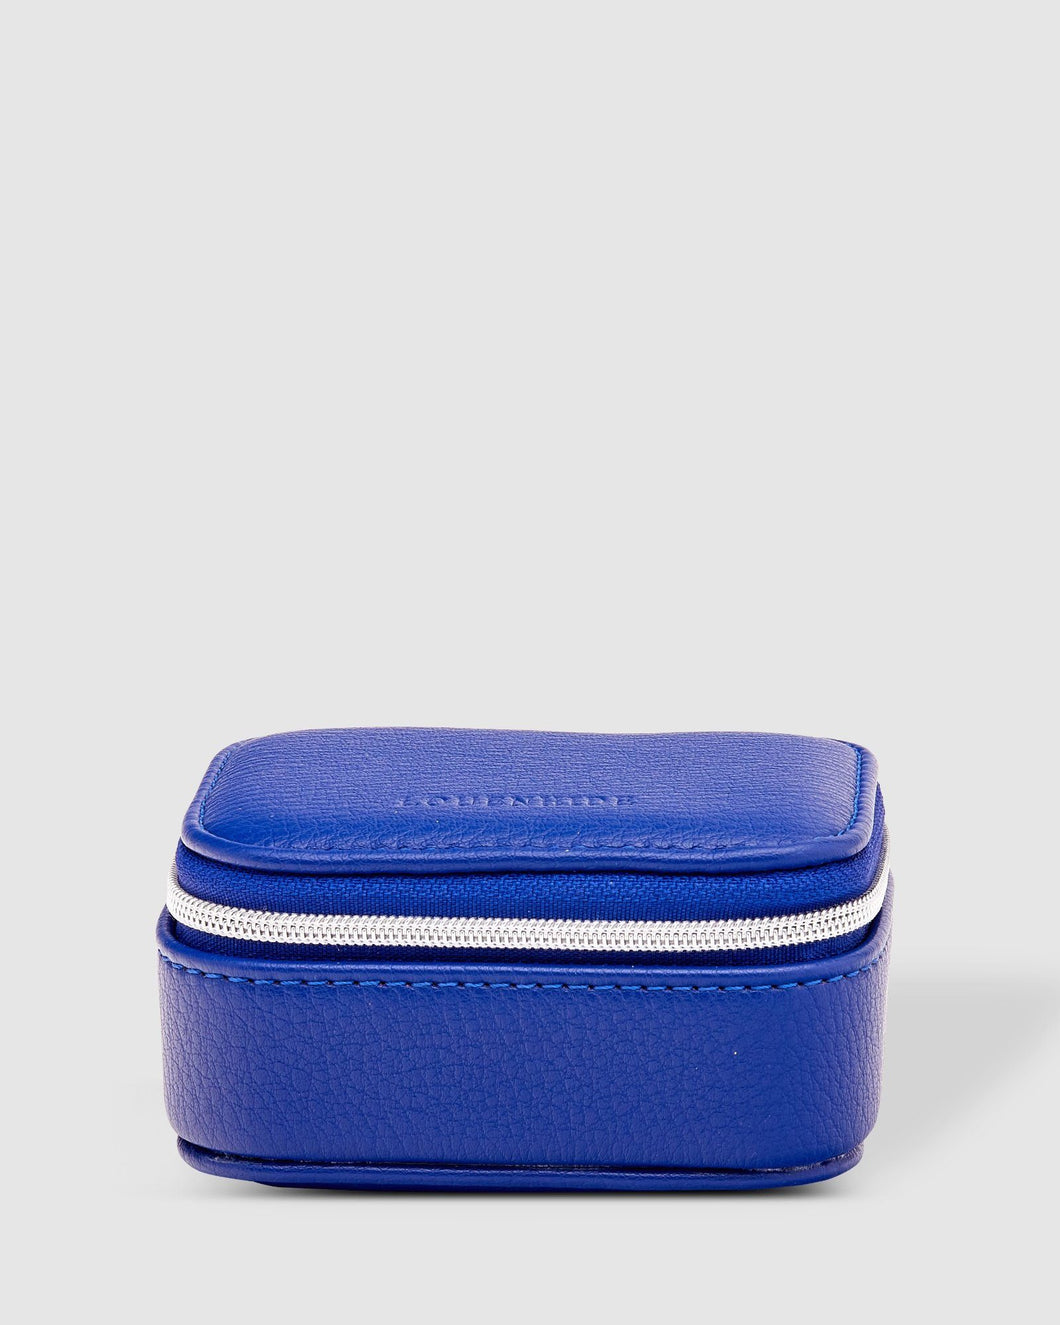 Louenhide Suzie Electric Blue Jewellery Box - Global Free Style